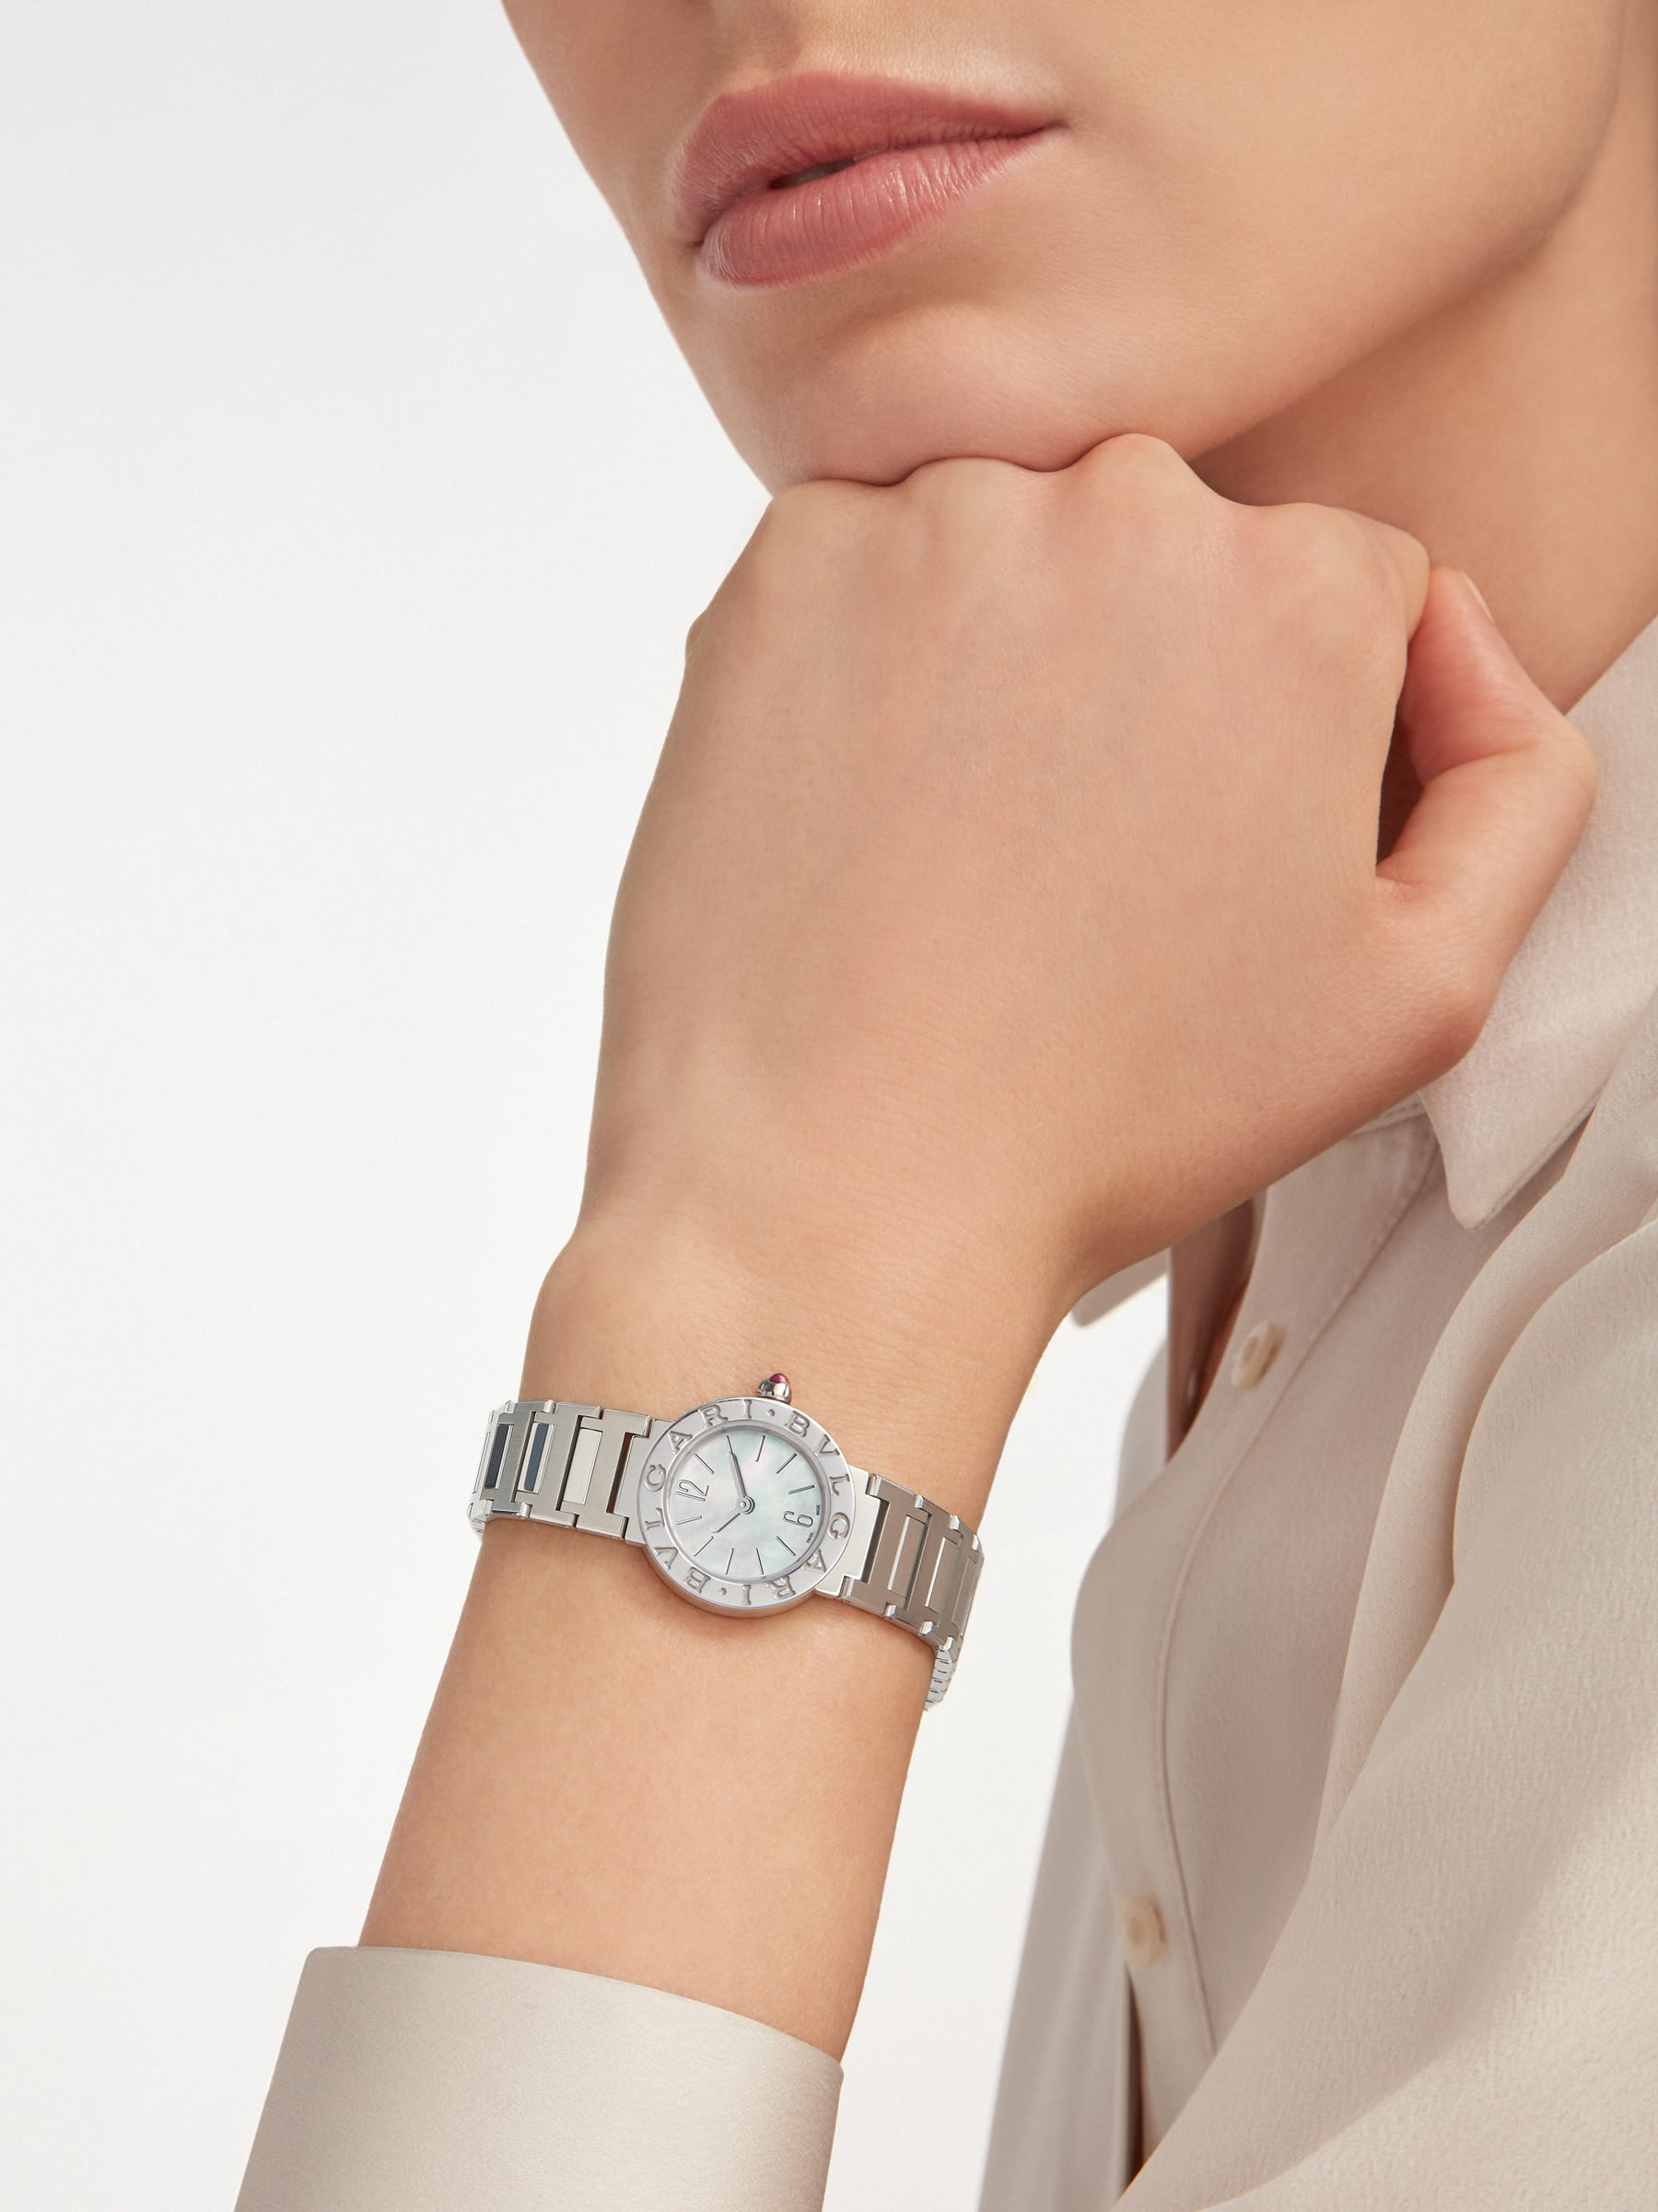 BVLGARI BVLGARI watch in stainless steel case and bracelet, stainless steel bezel engraved with double logo and mother-of-pearl dial 103217 image 4